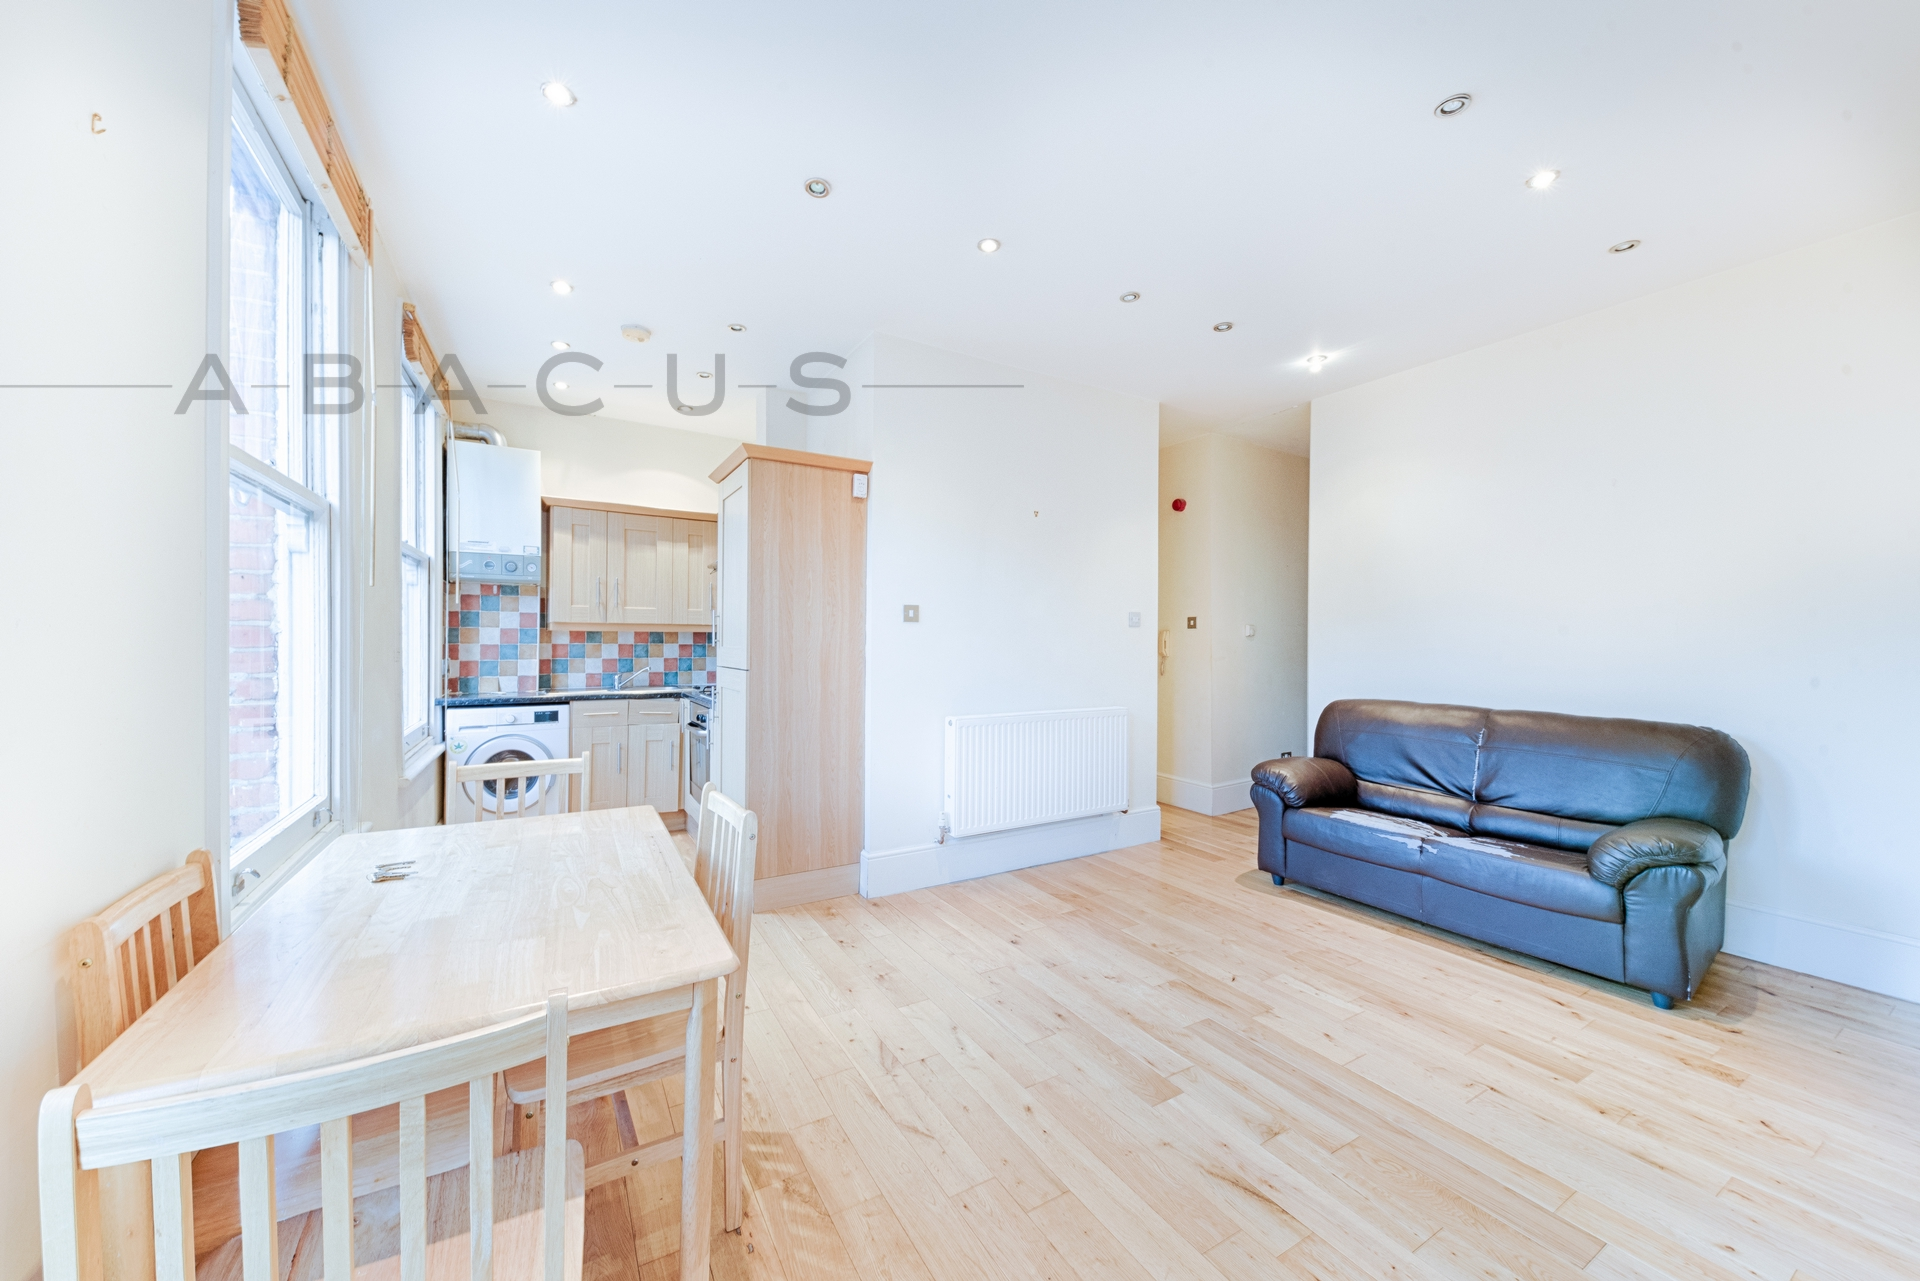 2 Bedroom Flat to rent in West Hampstead, London, NW6